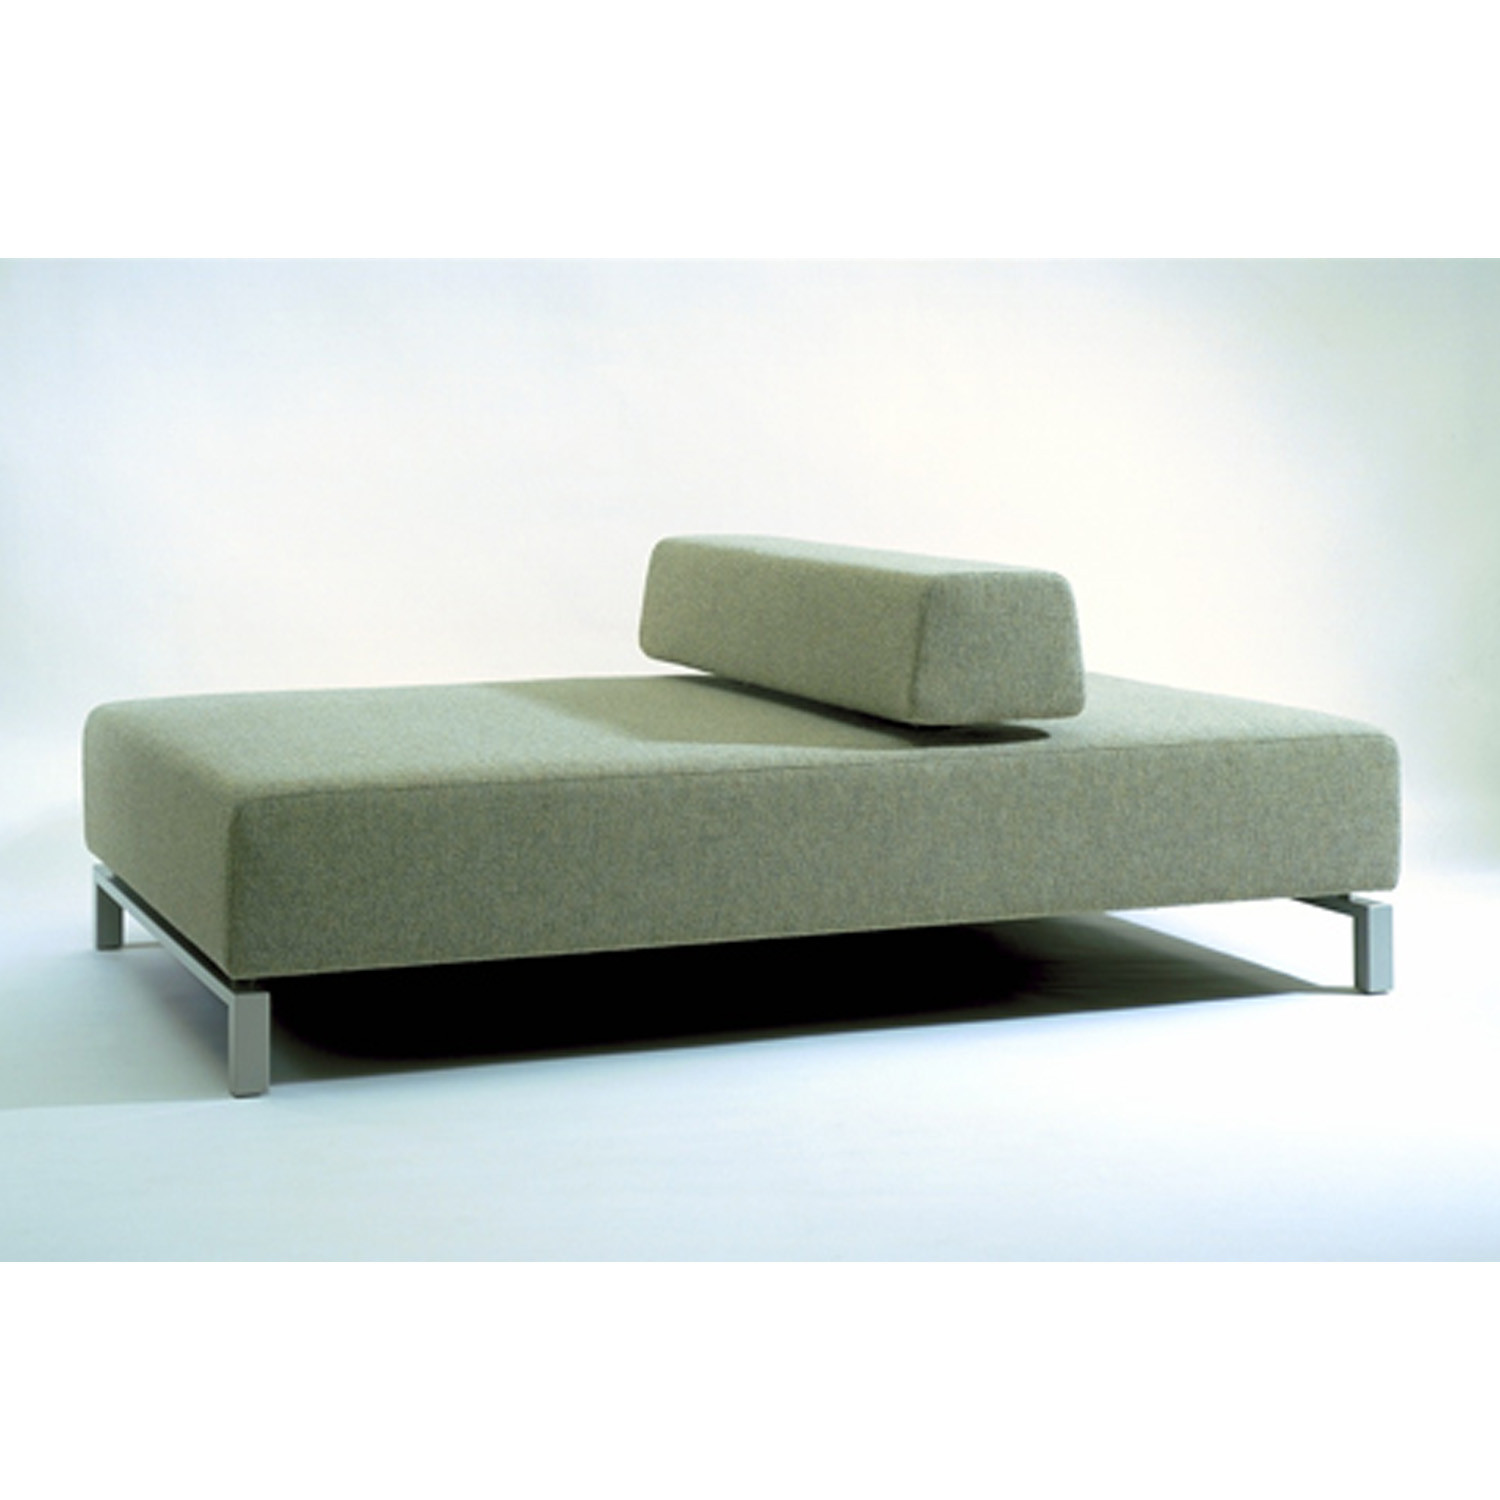 HM991 Daybed